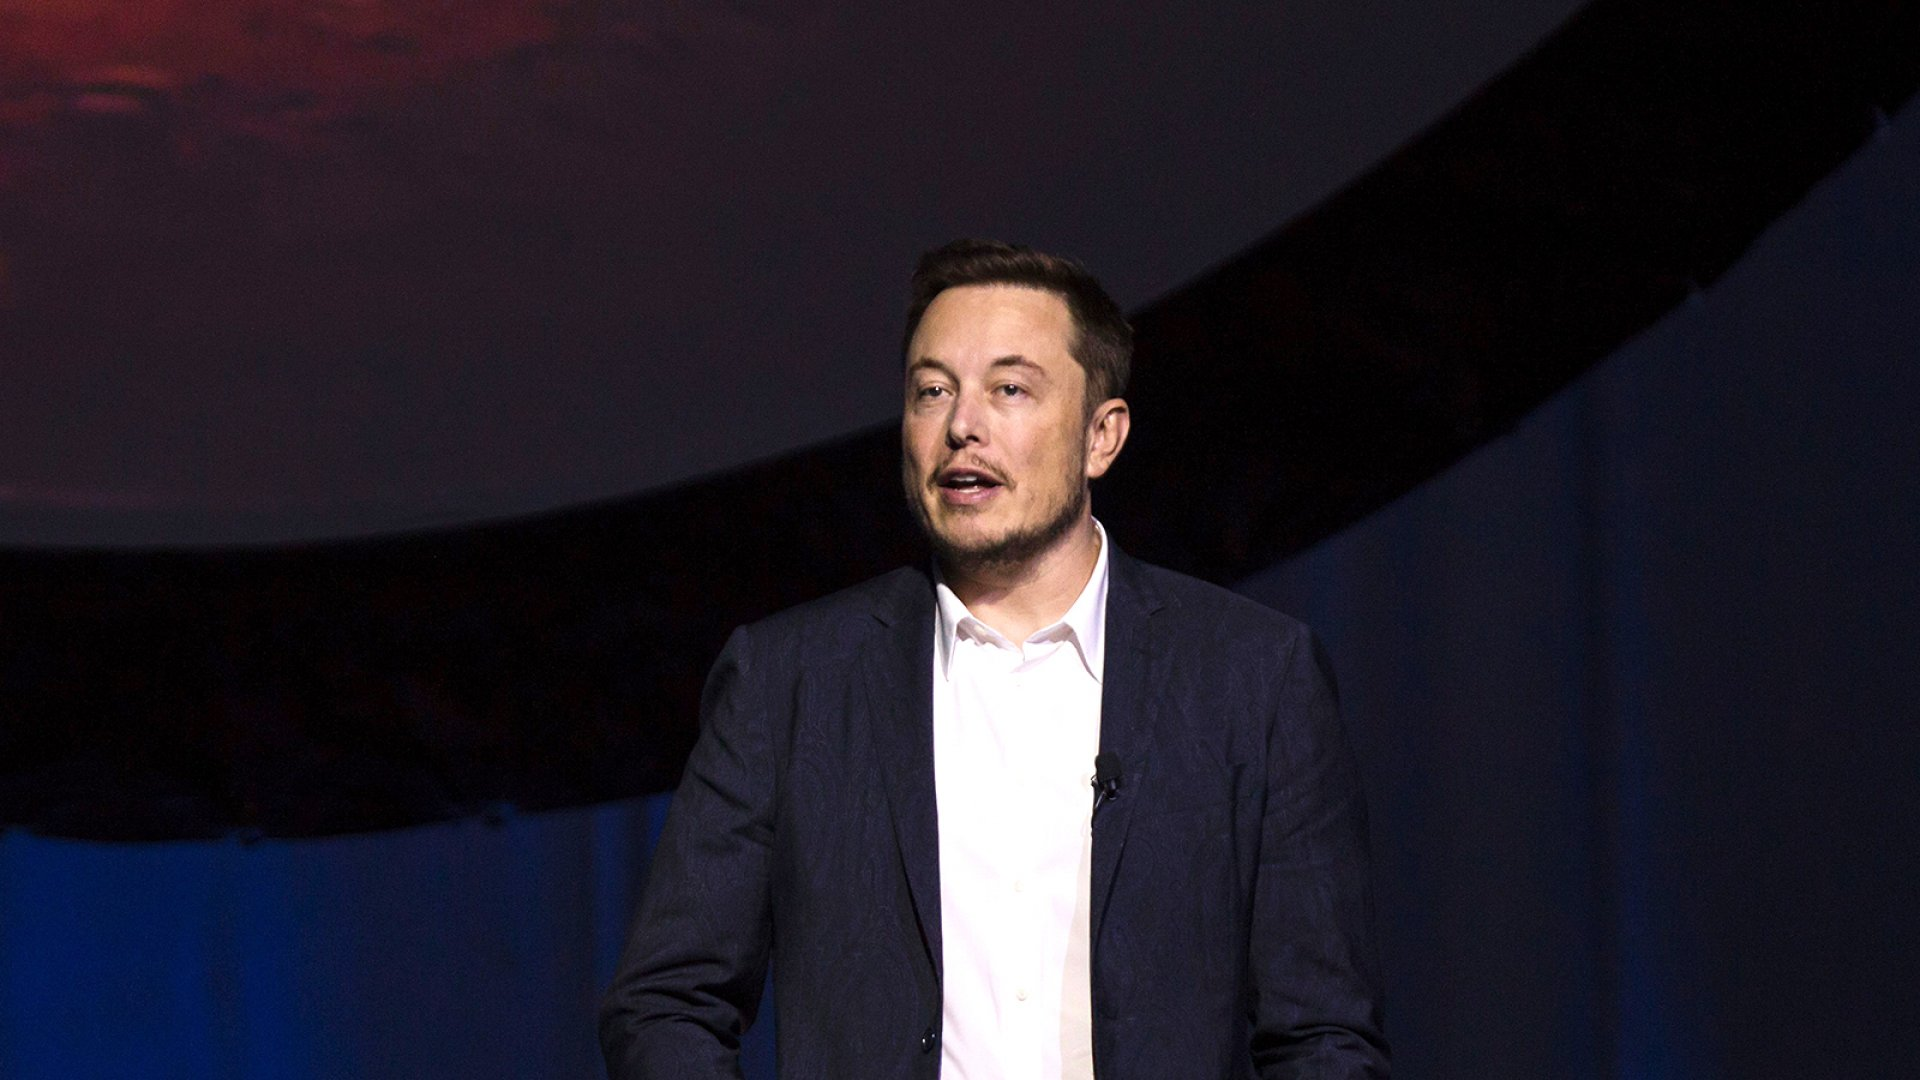 Elon Musk speaks about the Interplanetary Transport System, which aims to reach Mars with the first human crew in history, in the conference he gave during the 67th International Astronautical Congress in Guadalajara, Mexico, on September 27, 2016.